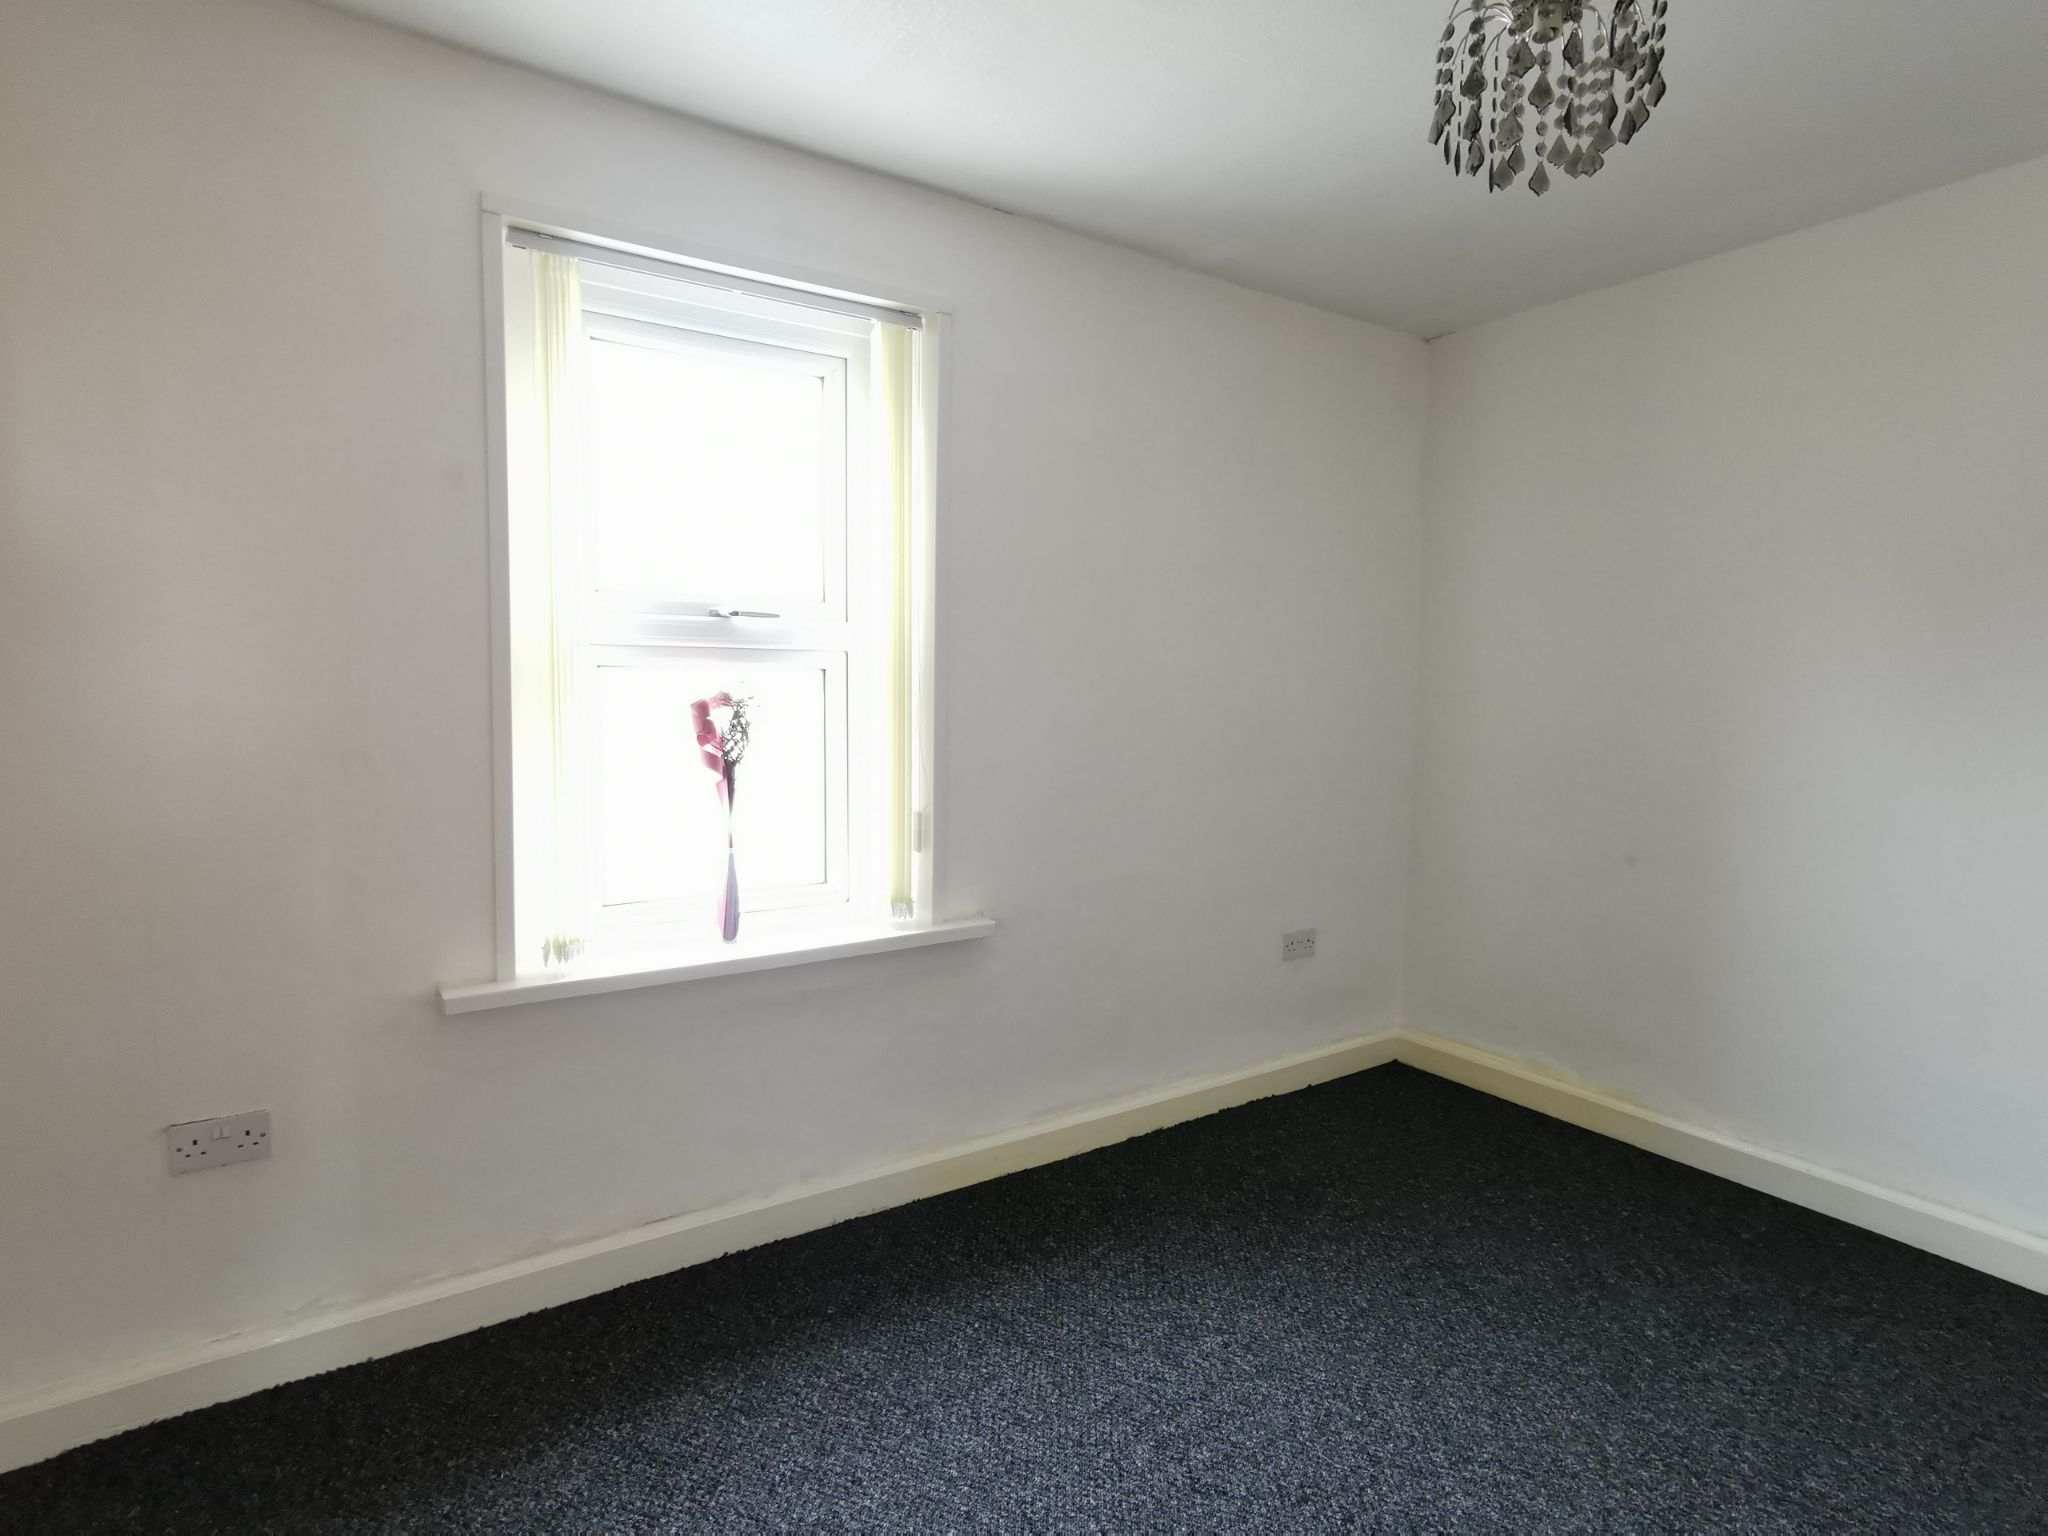 2 bedroom mid terraced house For Sale in Allerdale - Photograph 8.